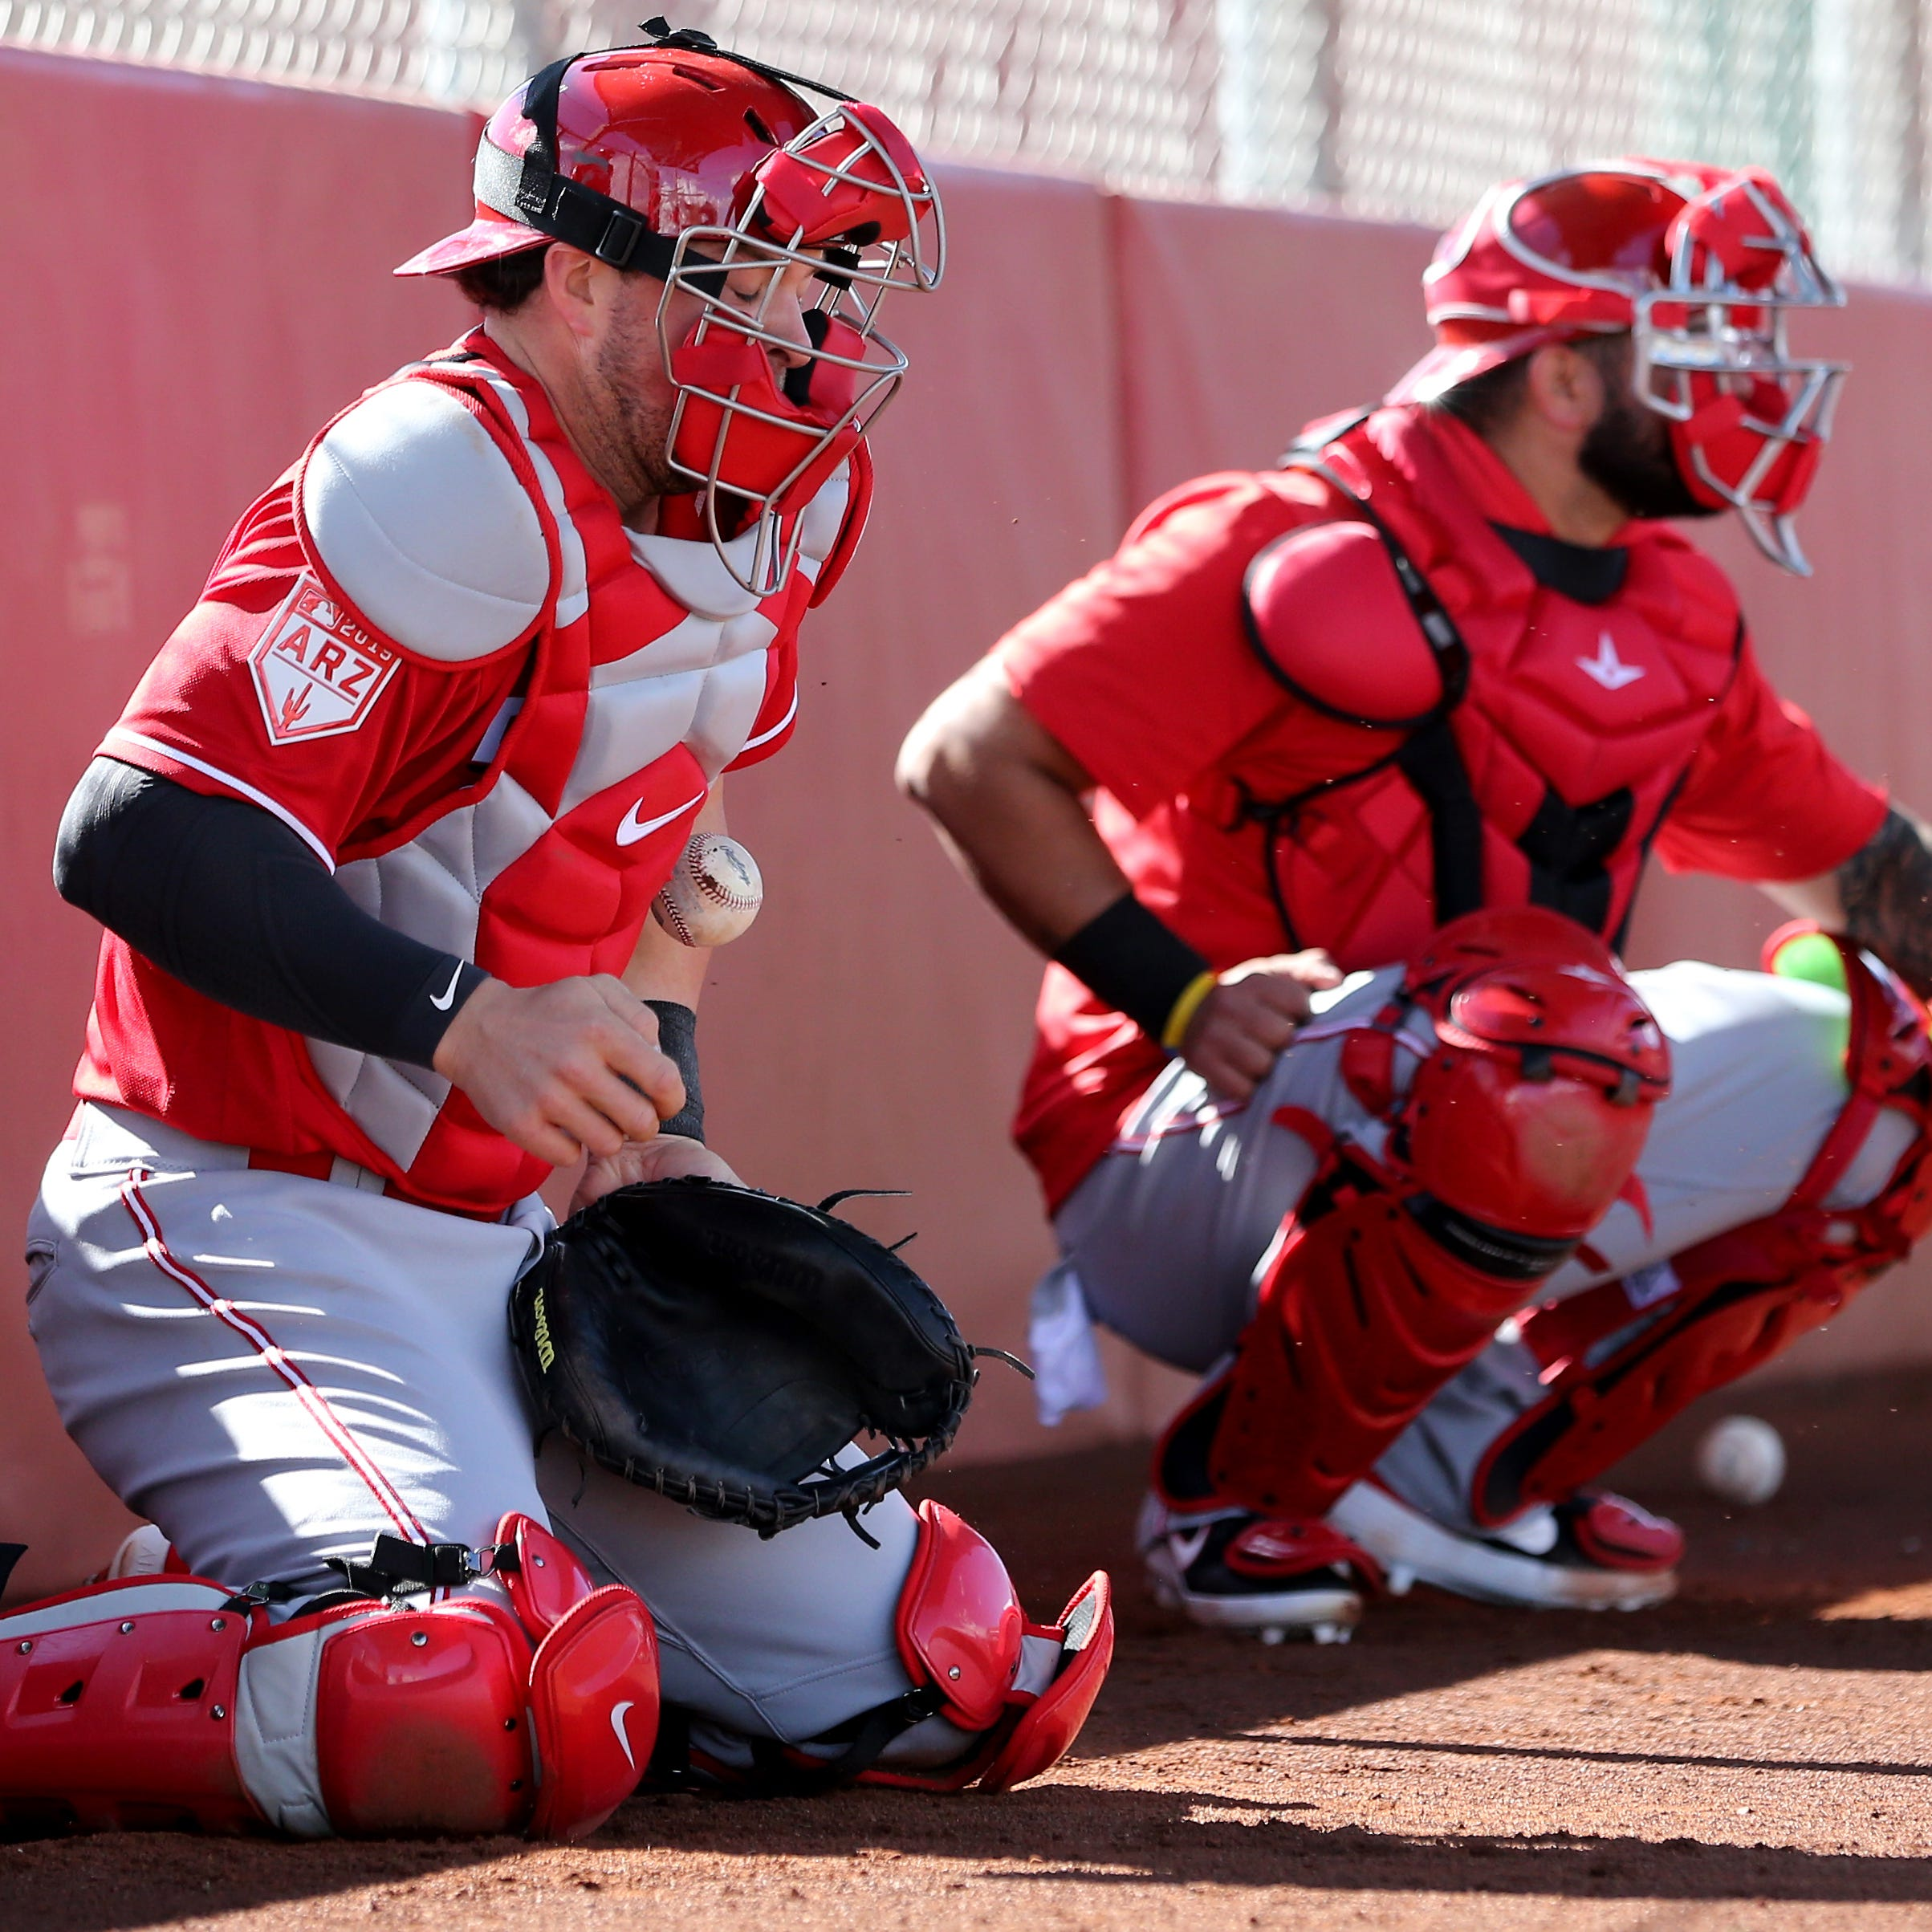 Cincinnati Reds notes: Kyle Farmer fills final bench spot; Wandy Peralta more confident